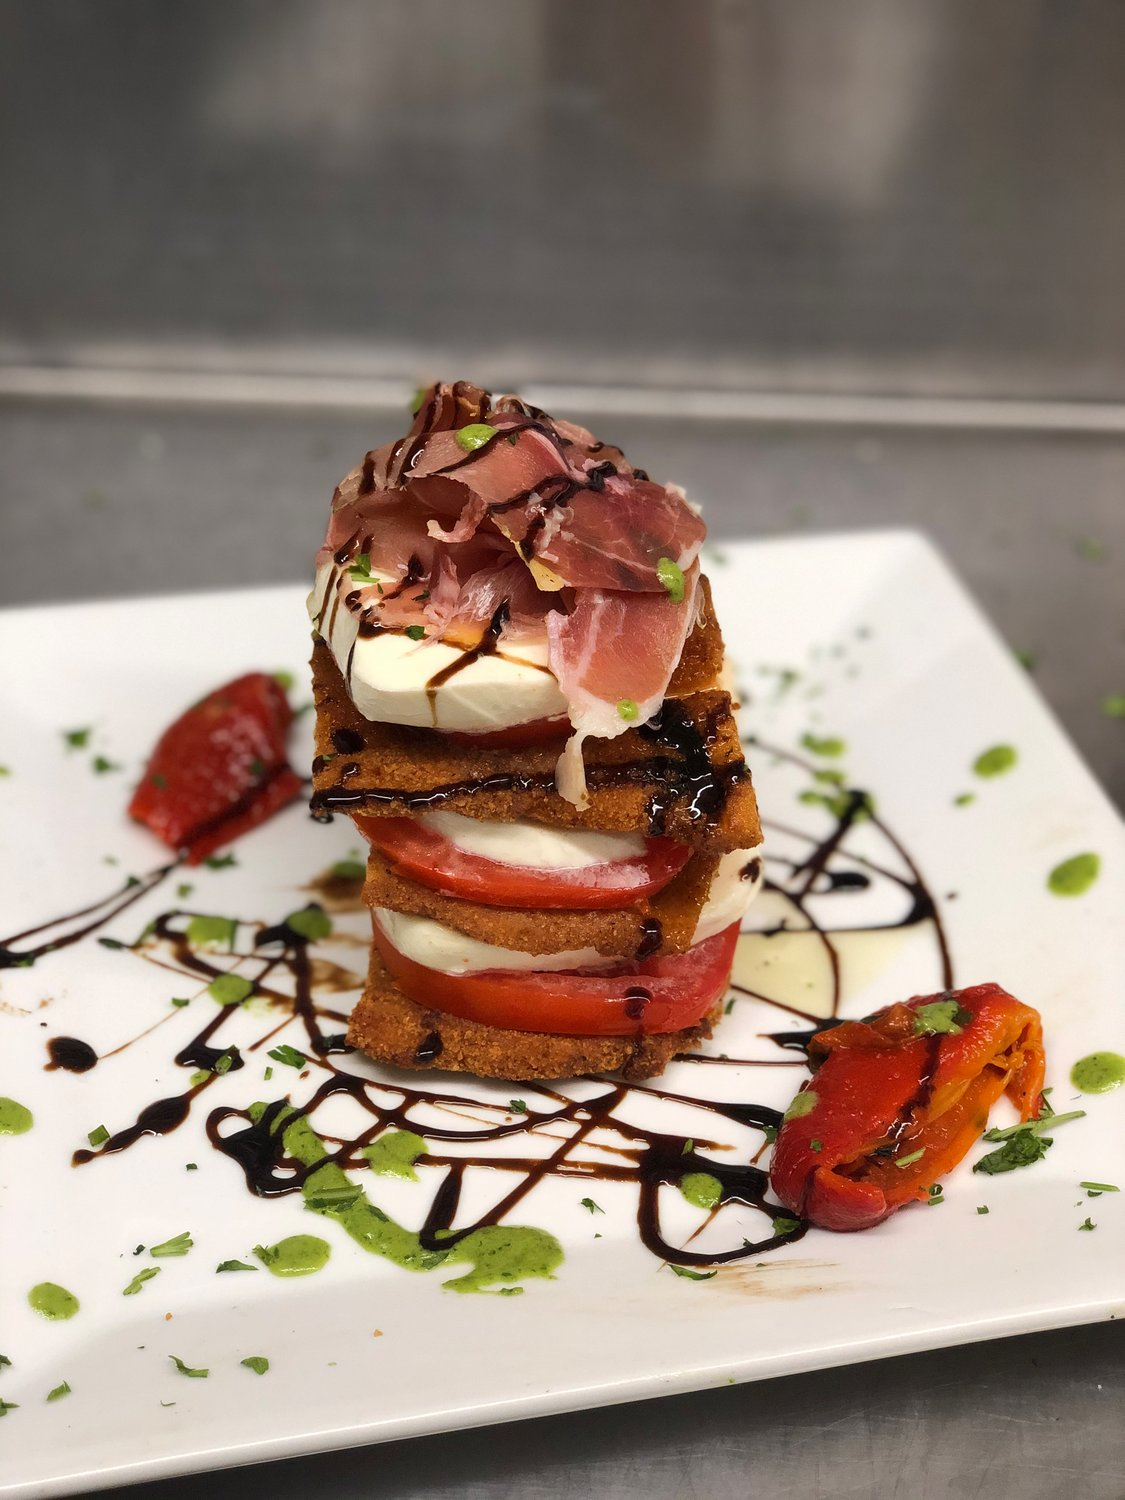 A dish that has garnered Instagram fame is Anthony's Chicken Stack, which features layers of pan-fried cutlets and sliced mozzarella and tomato topped with ribbons of prosciutto and drizzled with pesto and balsamic.